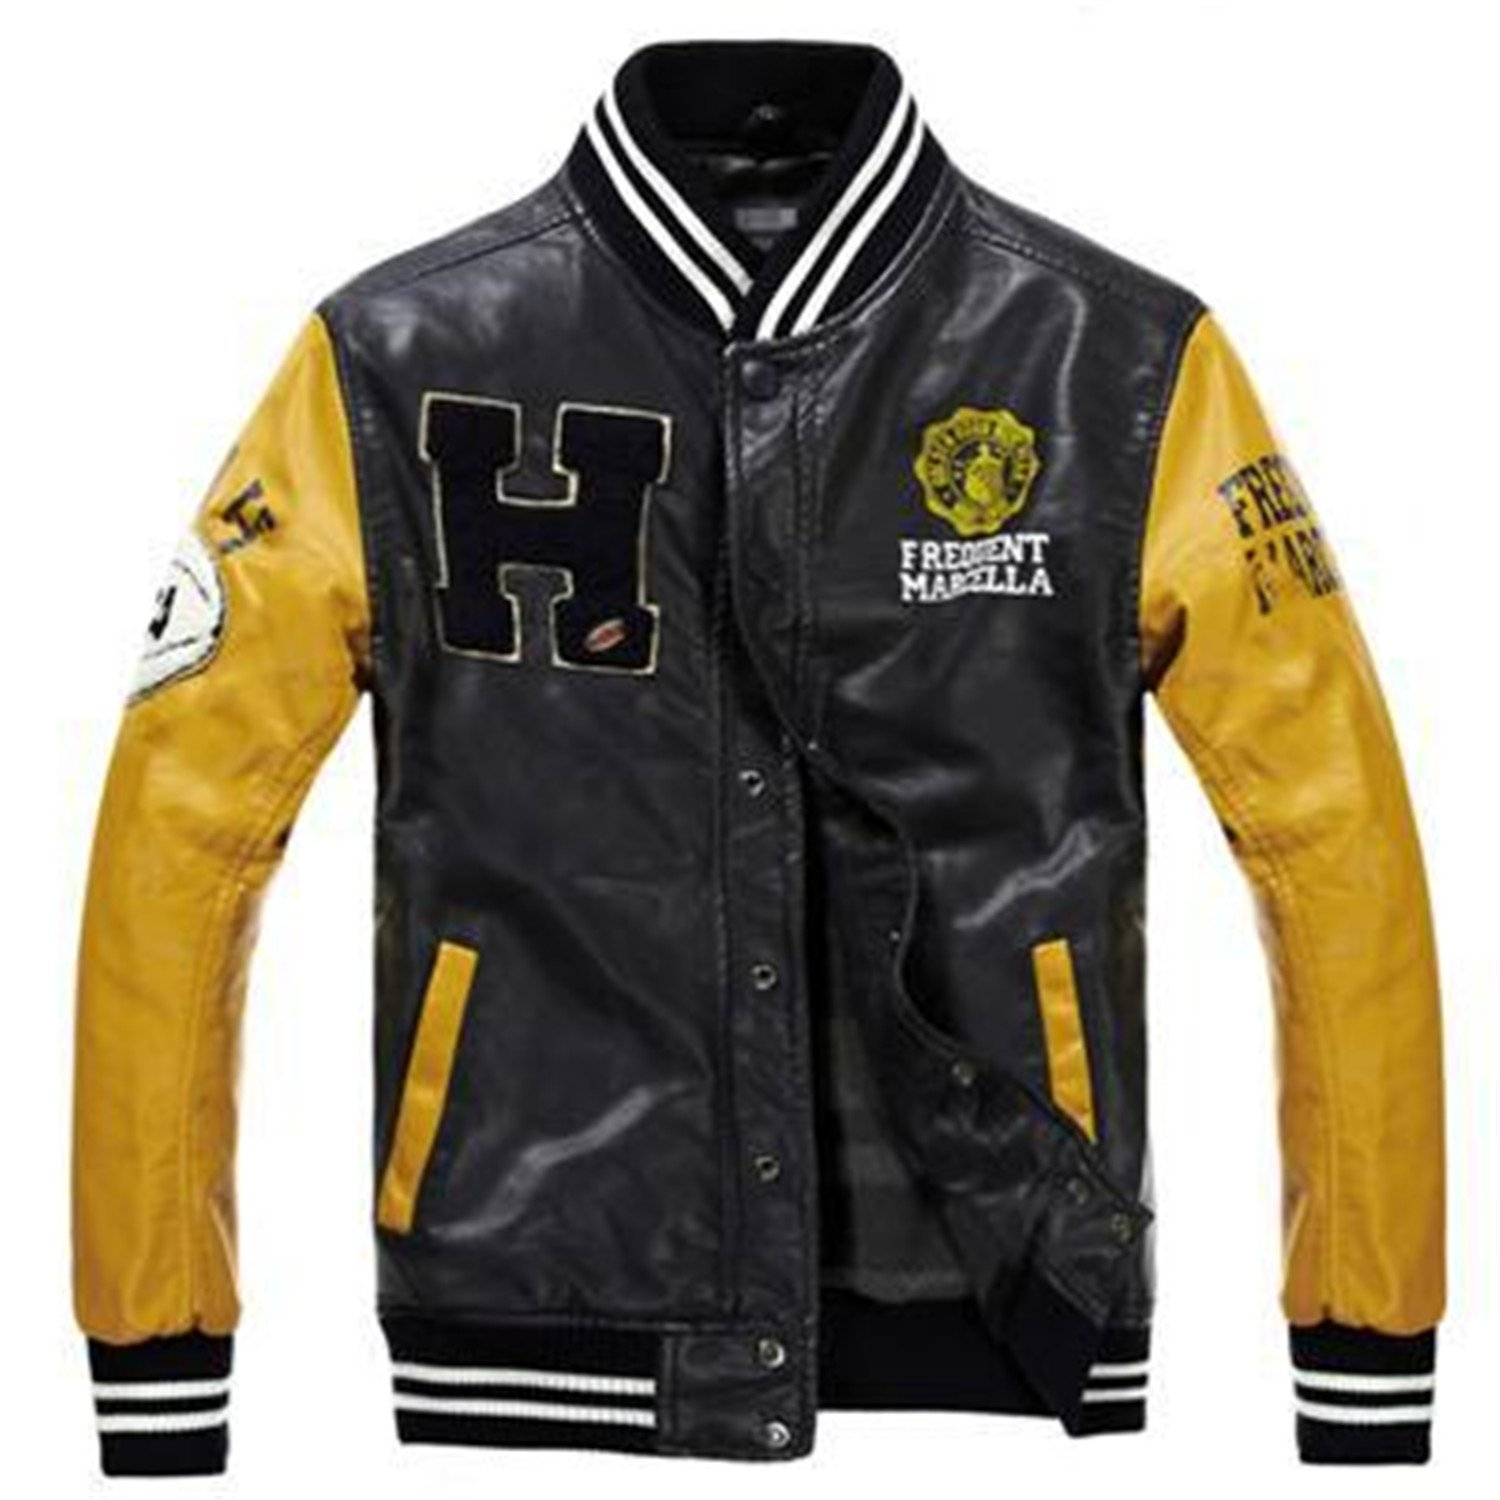 ... Leather Jacket College Style Jaqueta Couro Mens PU Leather Jacket Street Skate Jacket Autumn Winter Coat yellow blackXL at Amazon Mens Clothing store: